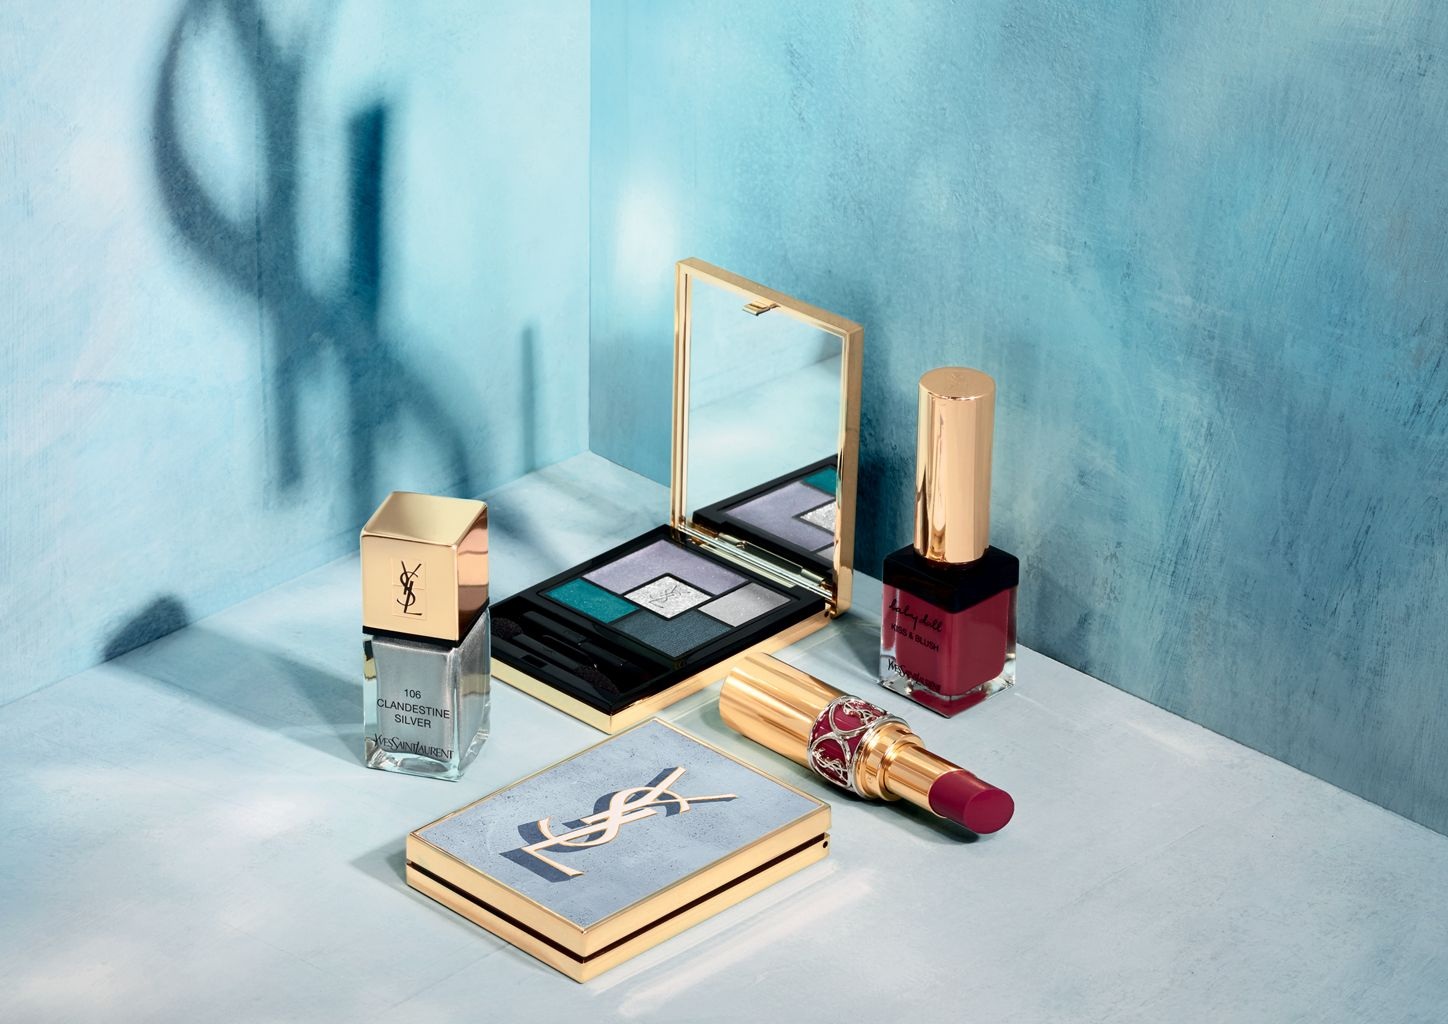 Go Bold With Yves Saint Laurent's Summer 2018 Makeup Release